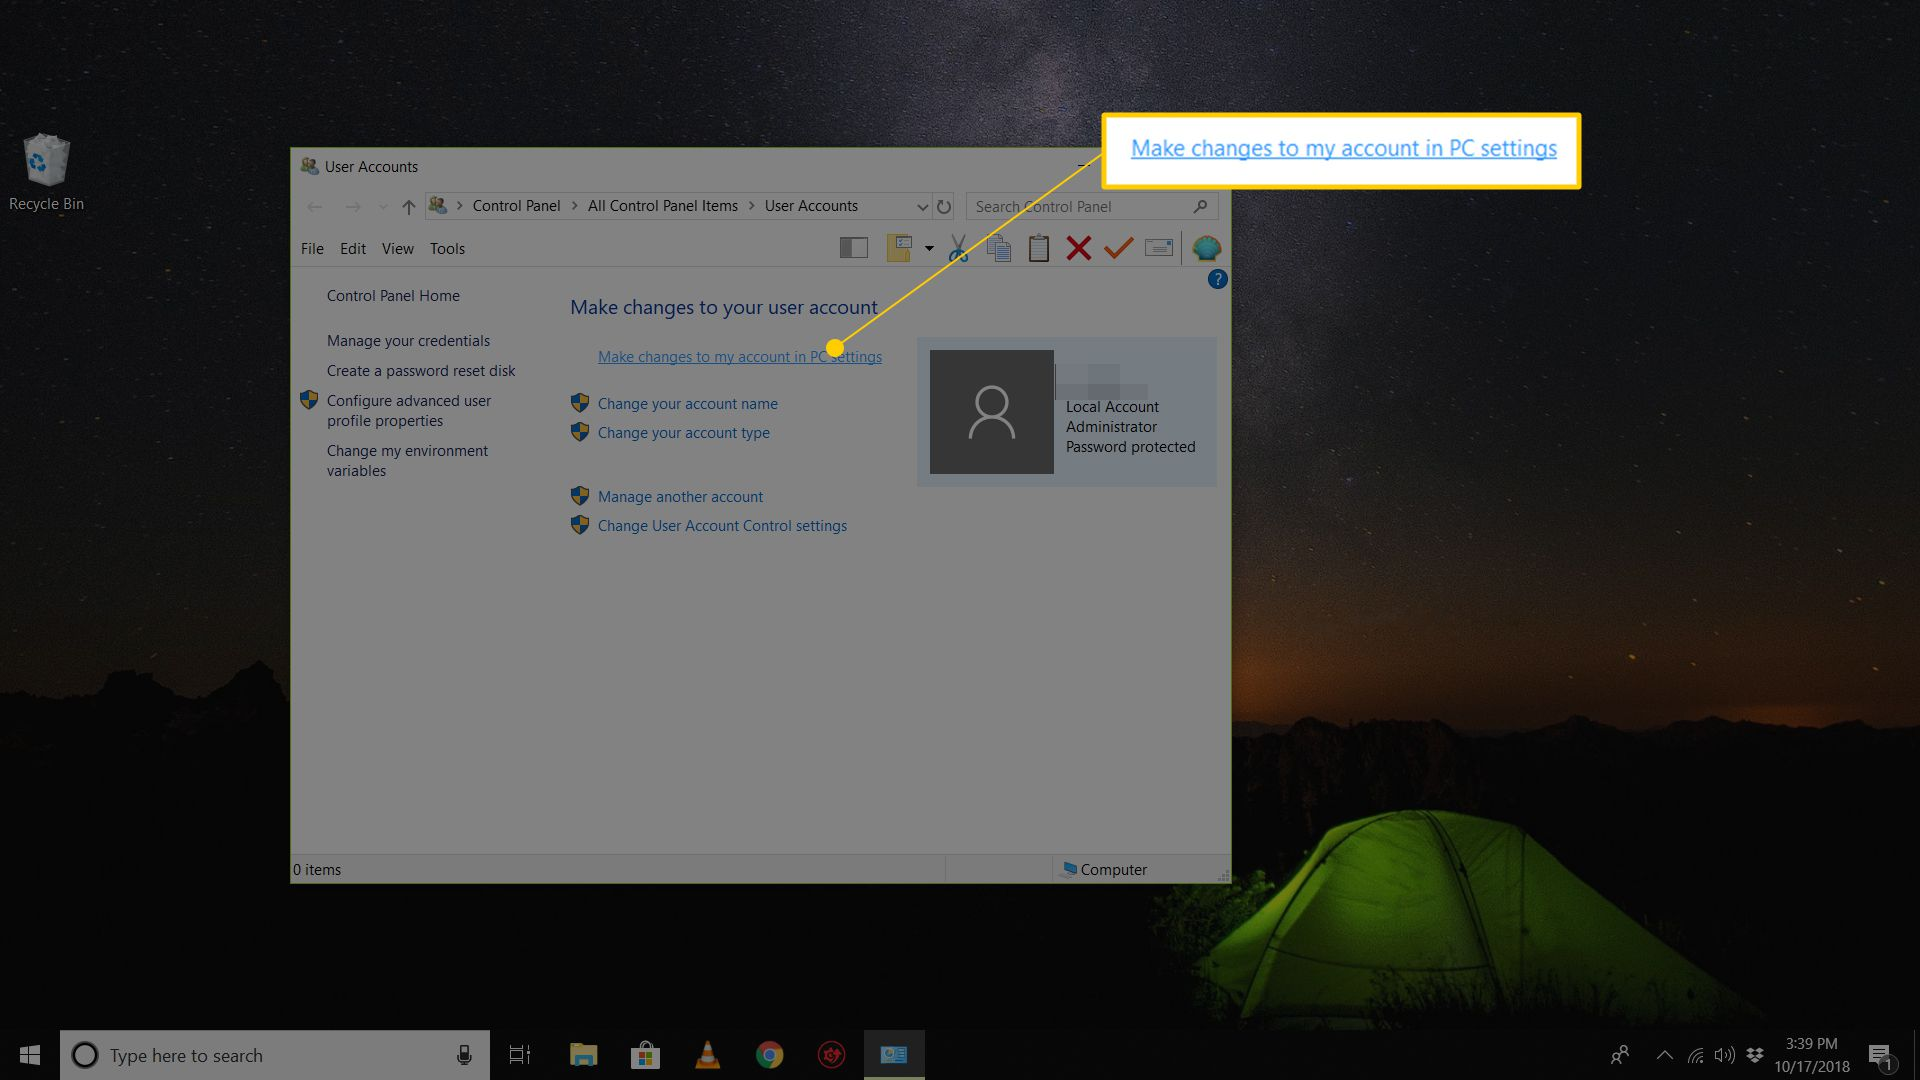 Make changes to my account in PC settings button in User Accounts pane